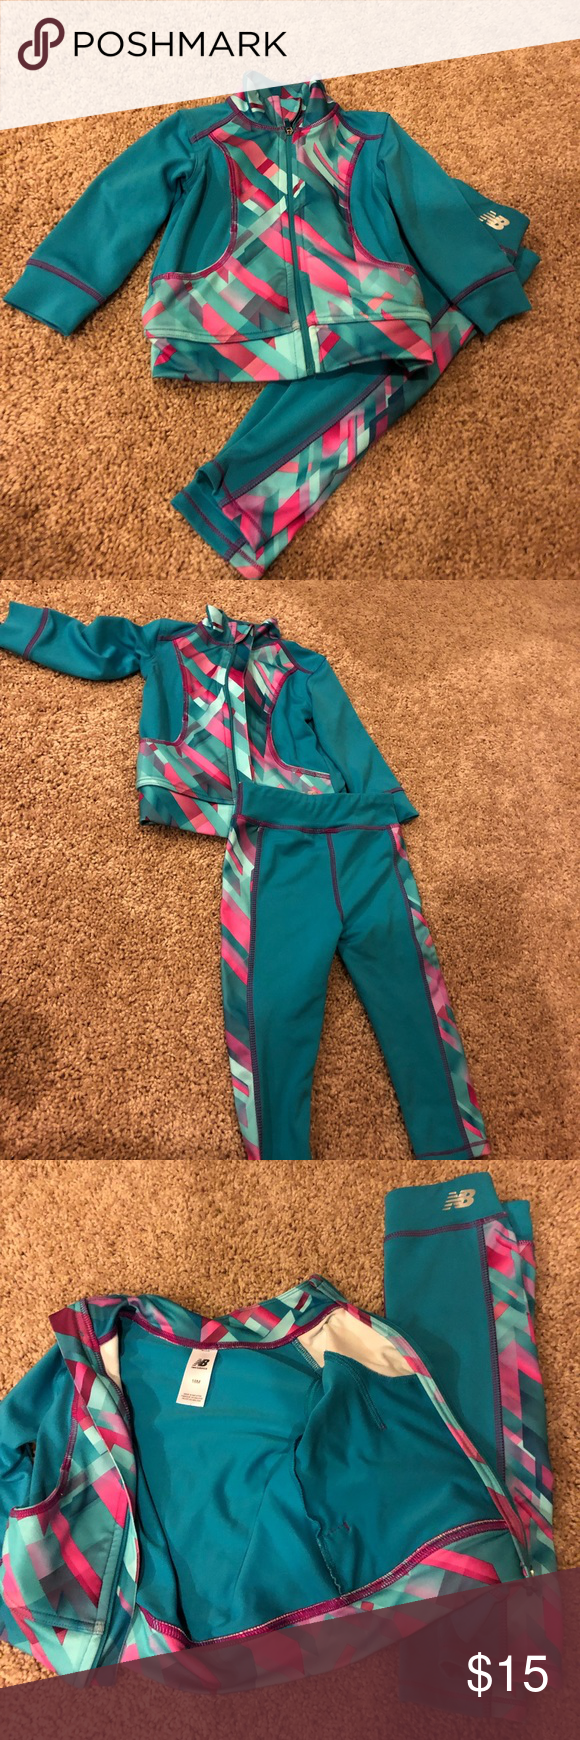 Toddler sweat suit New balance toddler sweat suit! Super